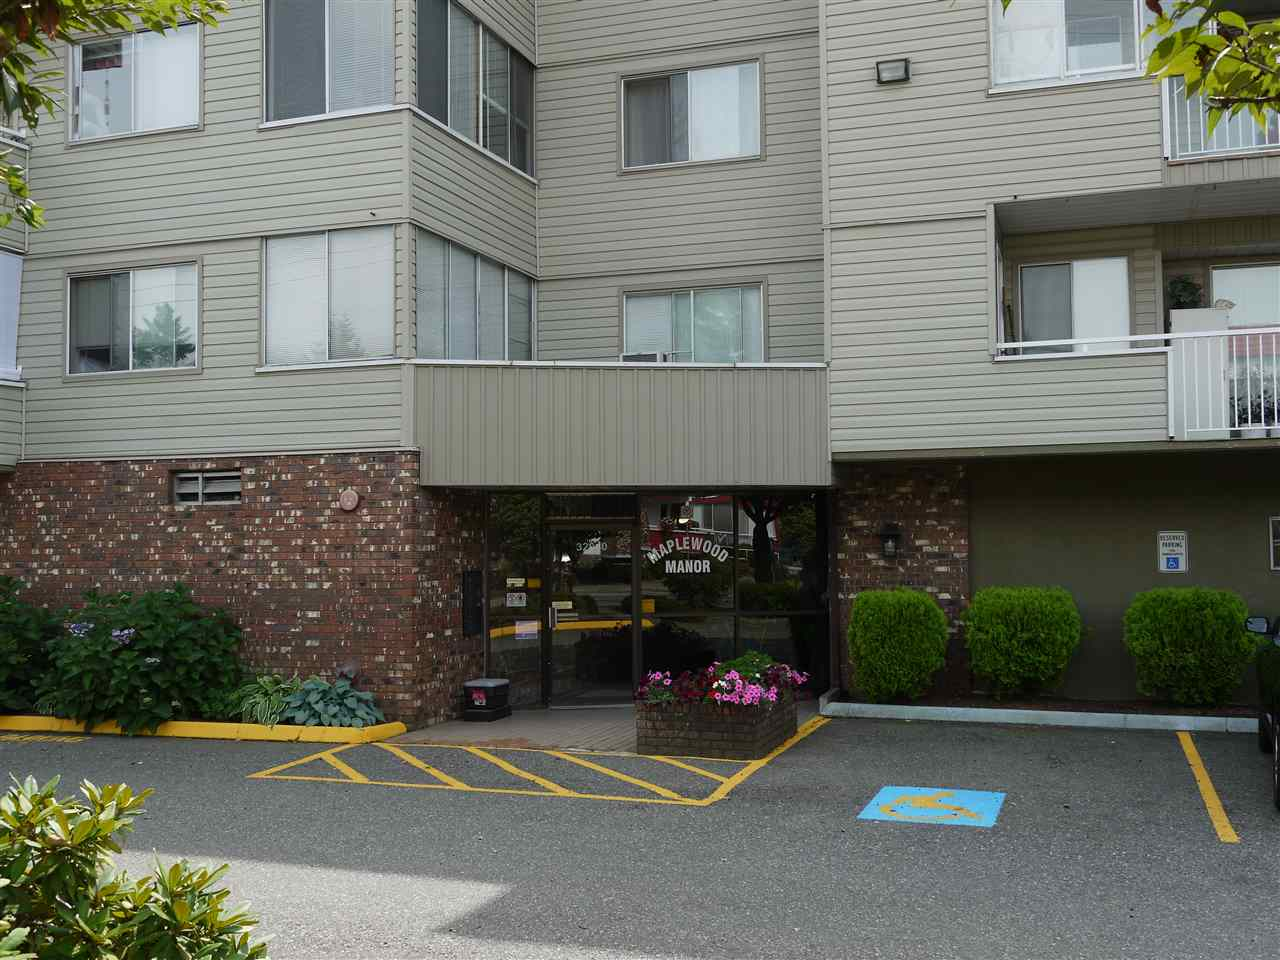 "Main Photo: 102 32040 TIMS Avenue in Abbotsford: Abbotsford West Condo for sale in ""Maplewood Manor"" : MLS® # R2196628"